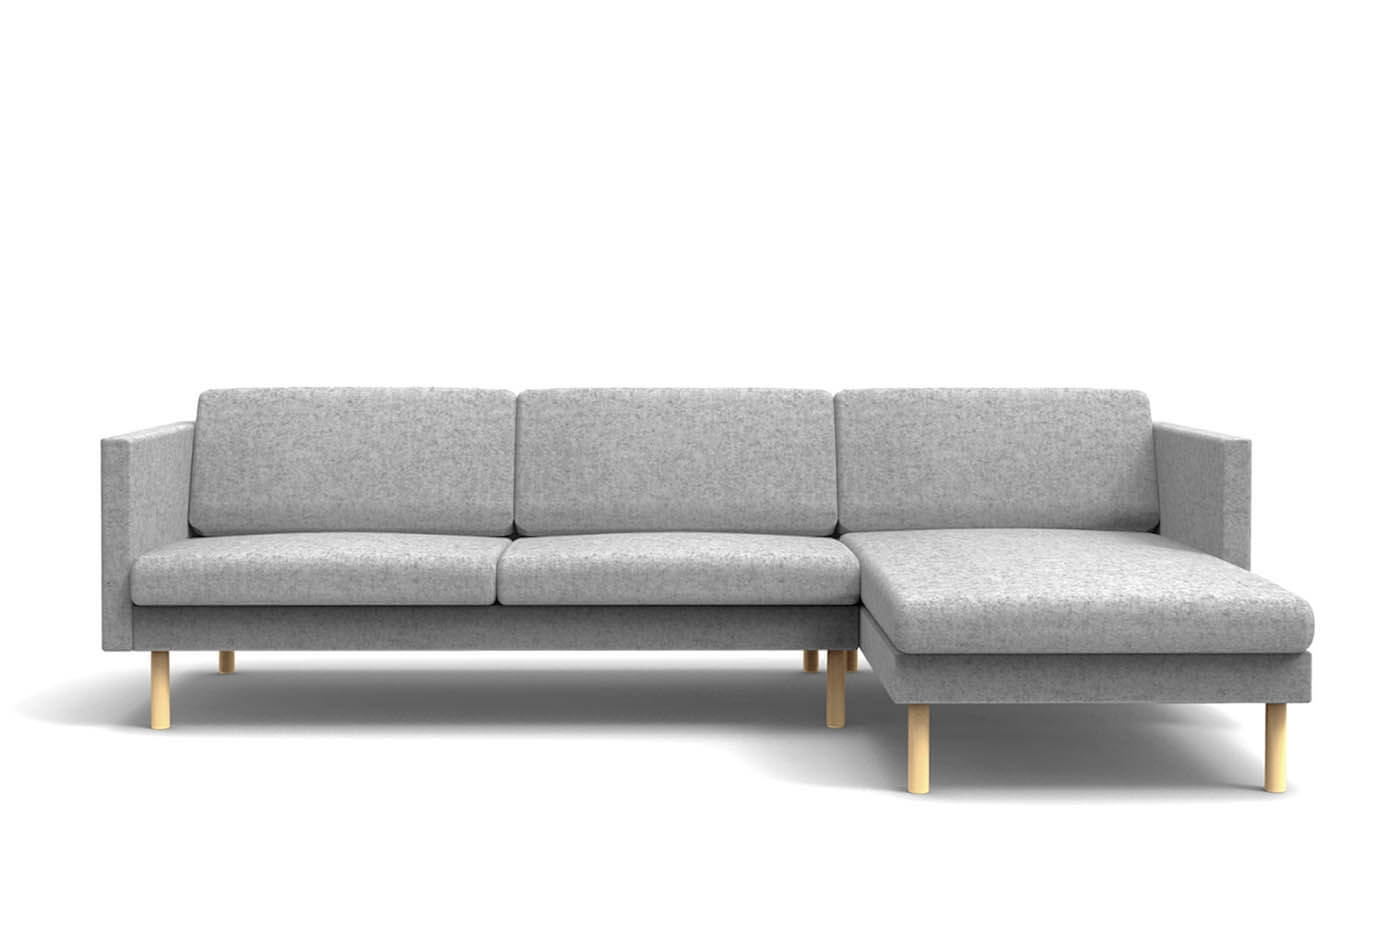 Trendy Leaf Sofa Chaise Lounge Left – Oot Oot Studio Inside Sofas With Chaise Lounge (View 2 of 15)